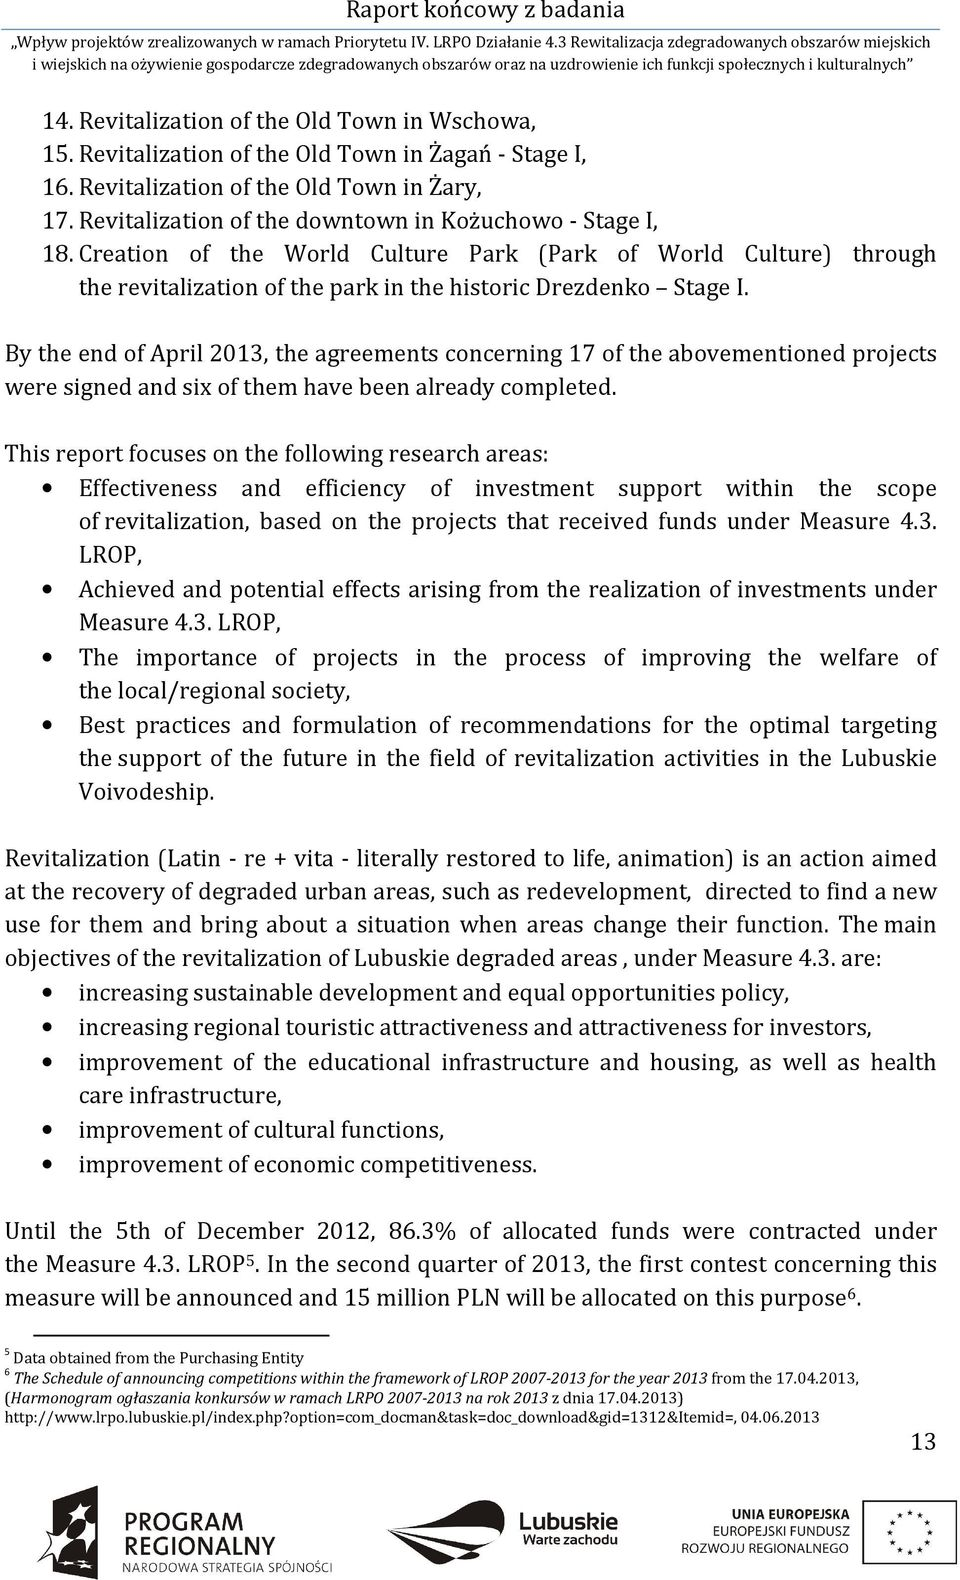 By the end of April 2013, the agreements concerning 17 of the abovementioned projects were signed and six of them have been already completed.